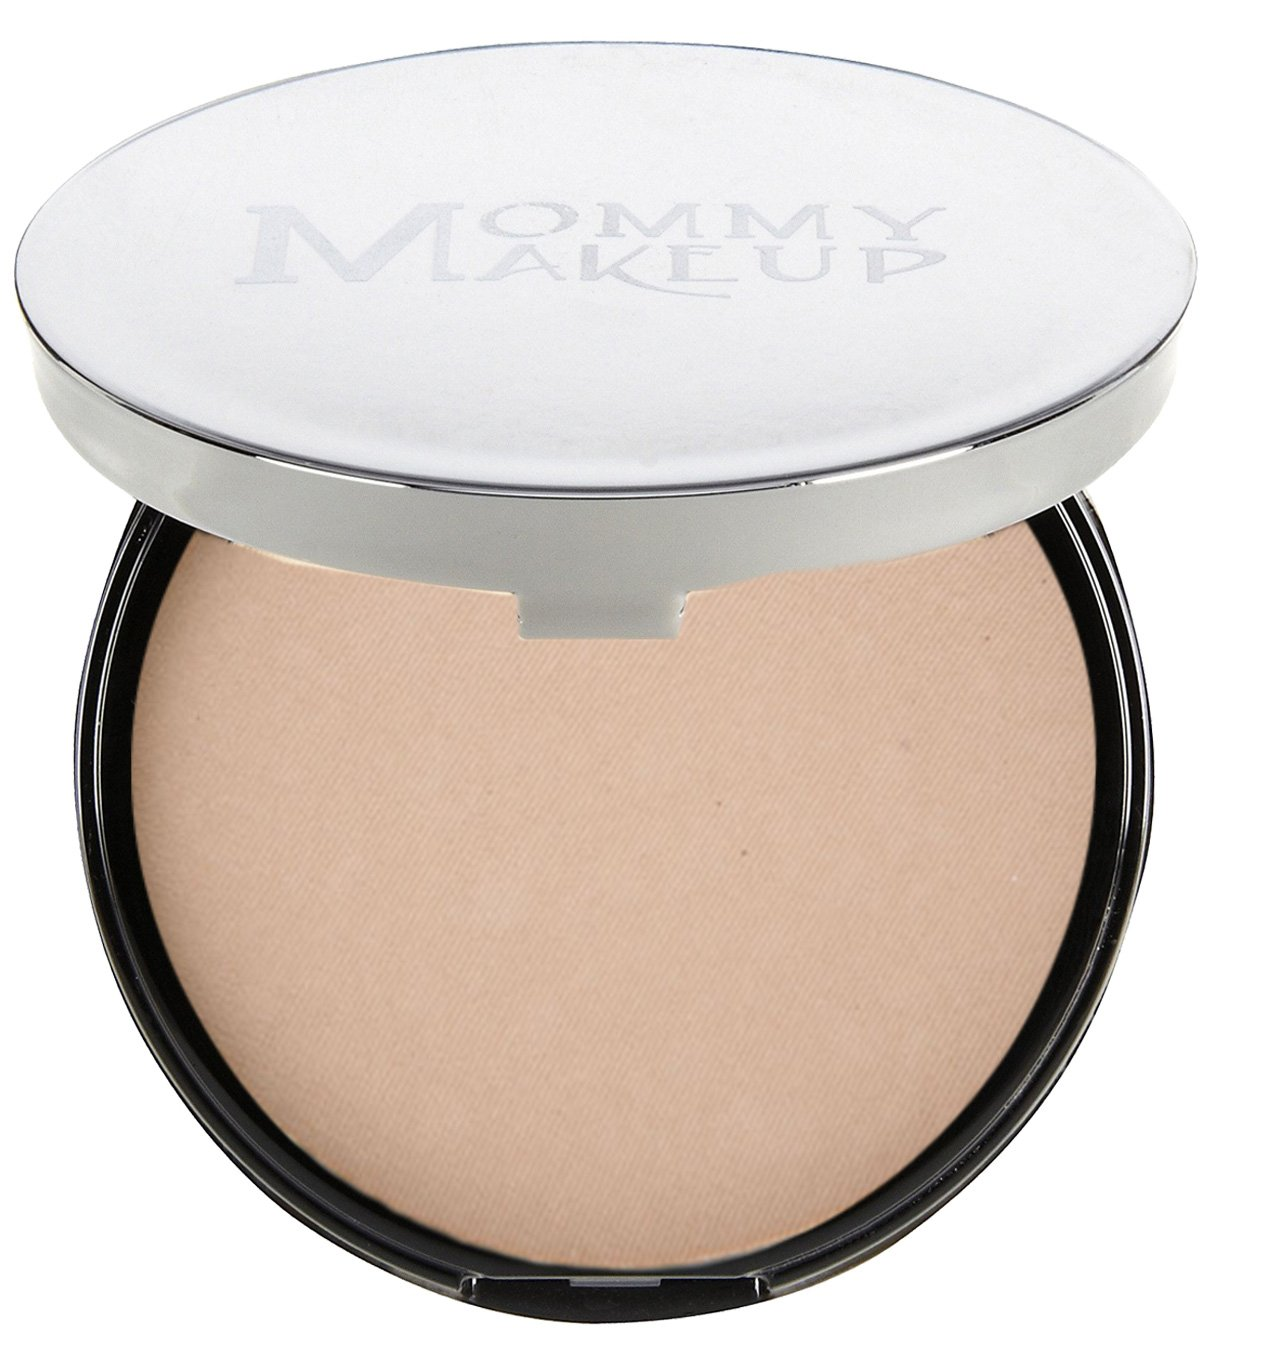 Mommy Makeup Mineral Dual Powder SPF15 [4-in-1 Pressed Mineral Foundation] 0.45 ounce - Oil-free, Talc-free, Fragrance-free, Paraben-free - Due Date